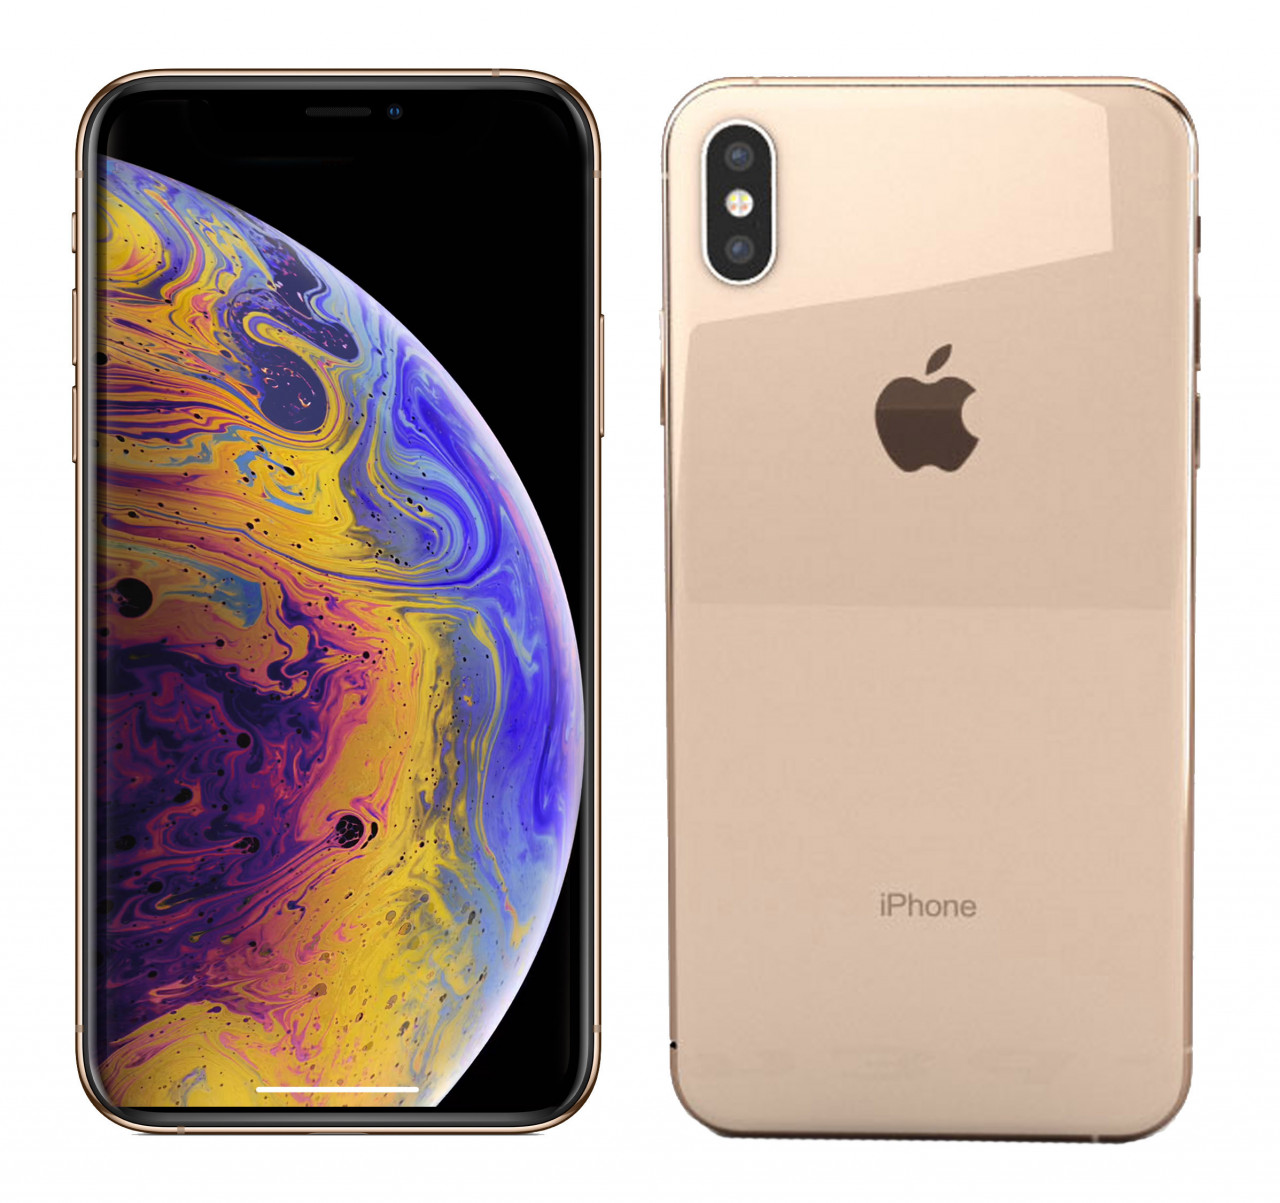 485a39e0389b40 Apple iPhone XS Max Dual Sim Price In Pakistan - Home Shopping